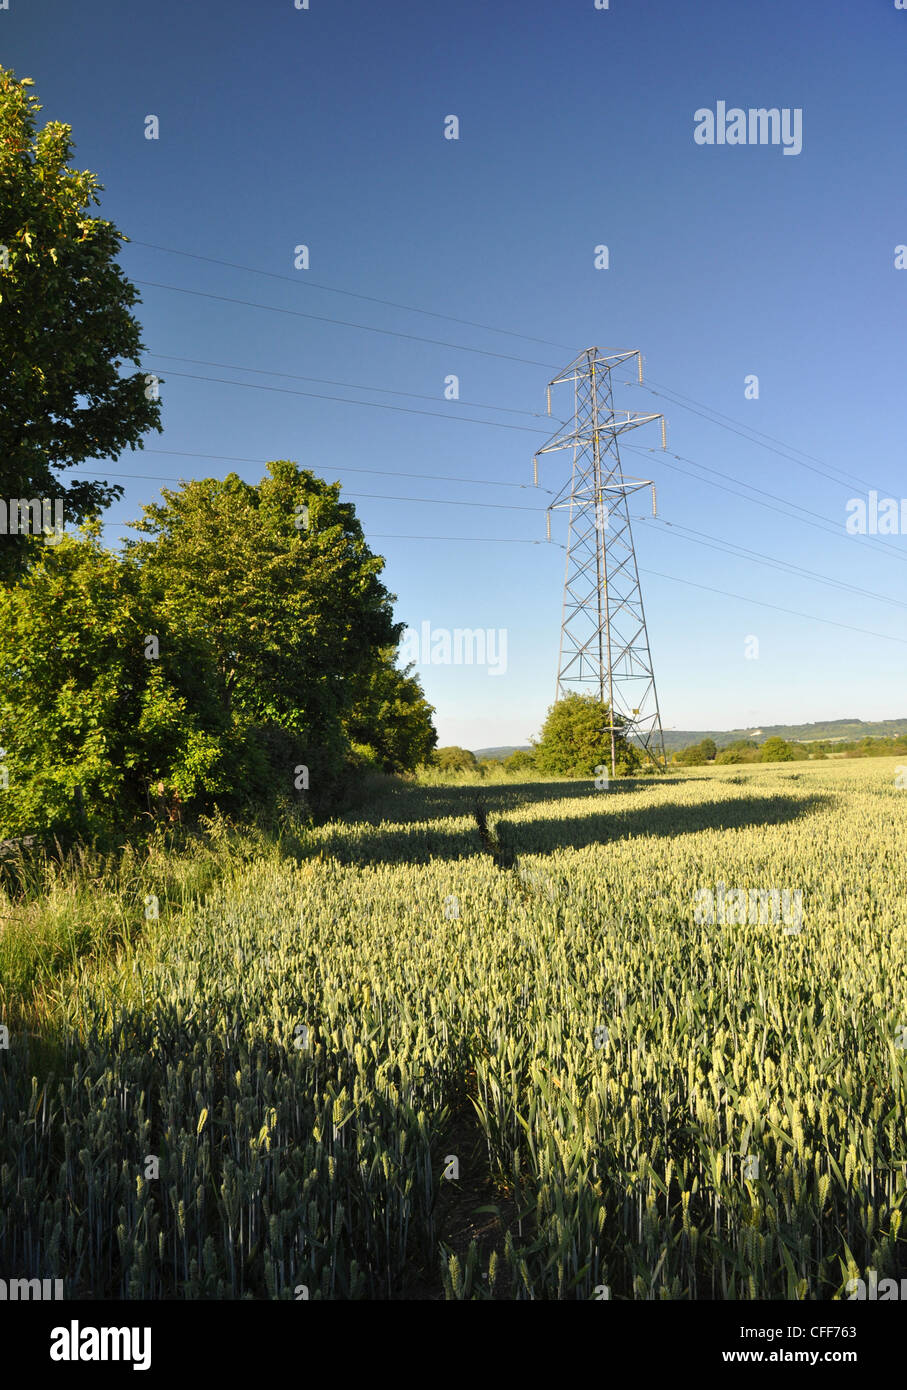 Corn field with distant Electricity Pylon, Technology and Nature working together - Stock Image